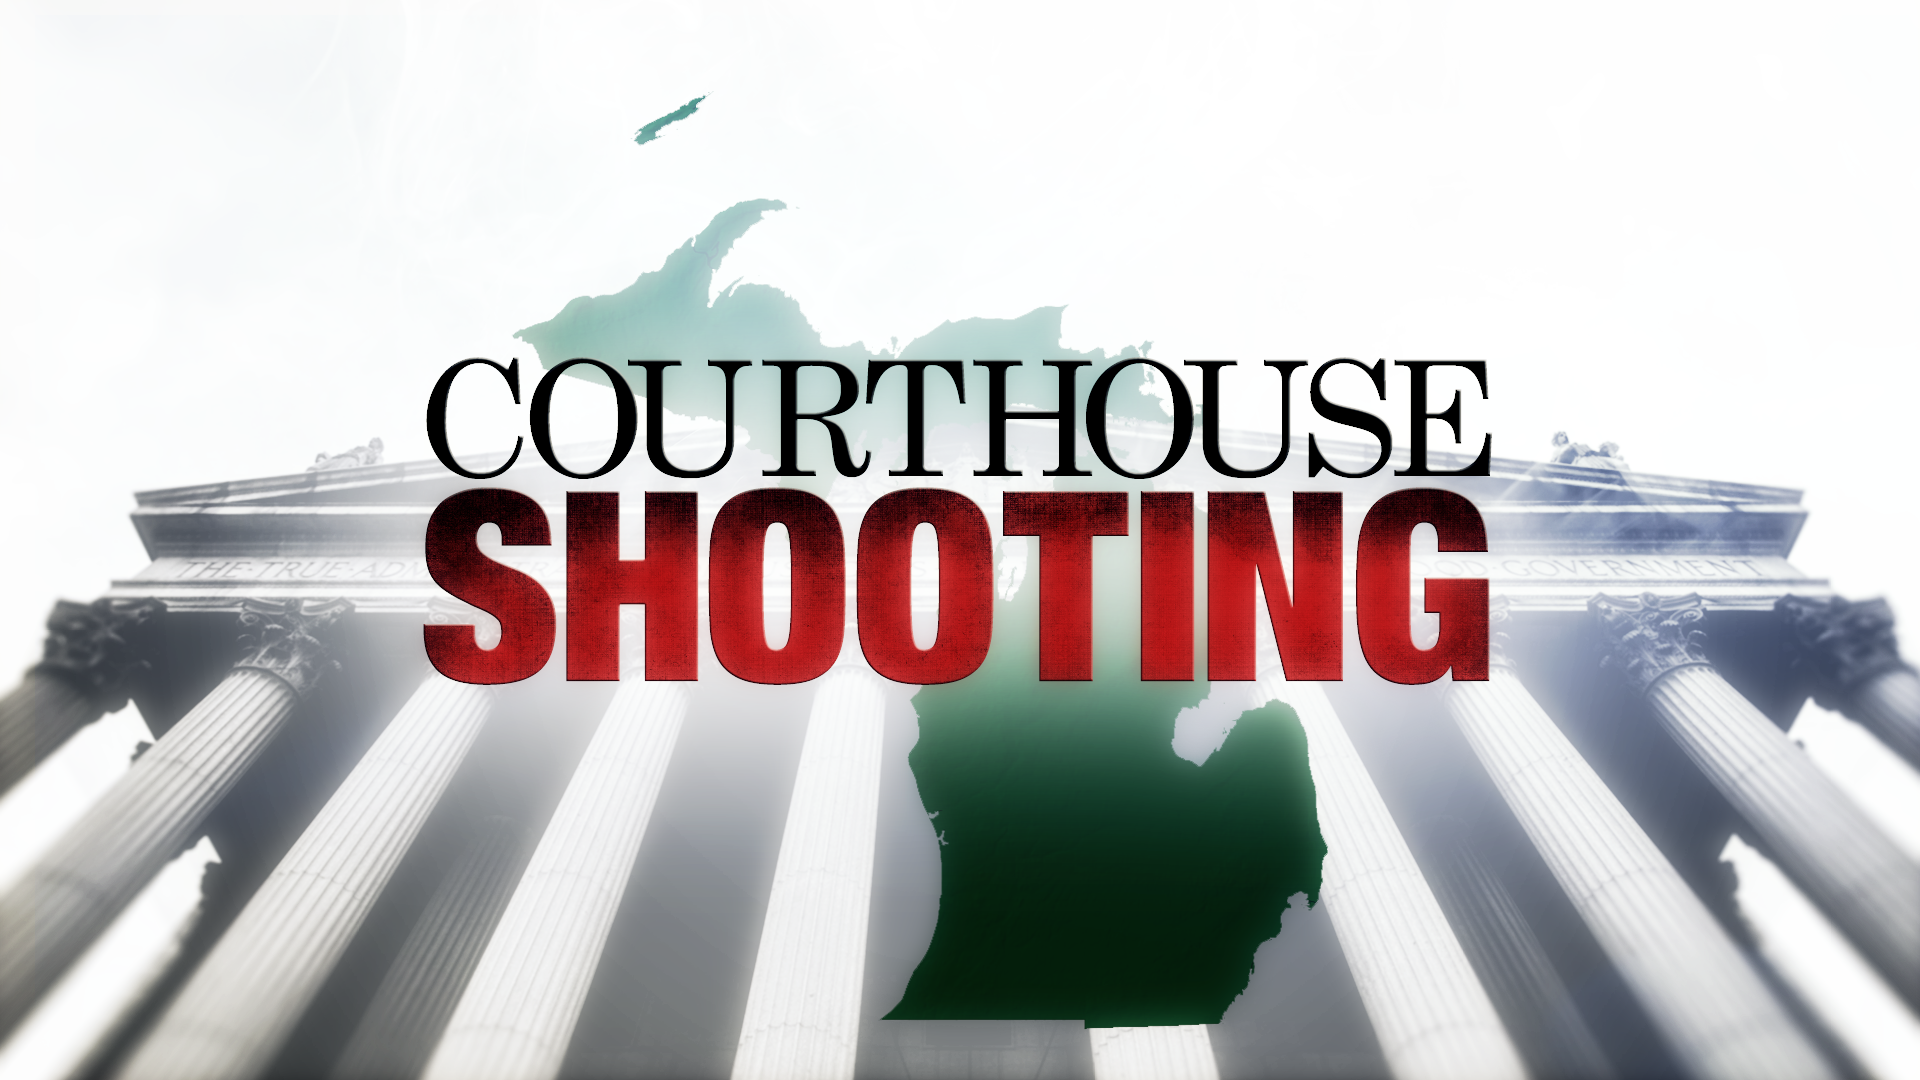 Inmate shoots two bailiffs dead in MI courthouse